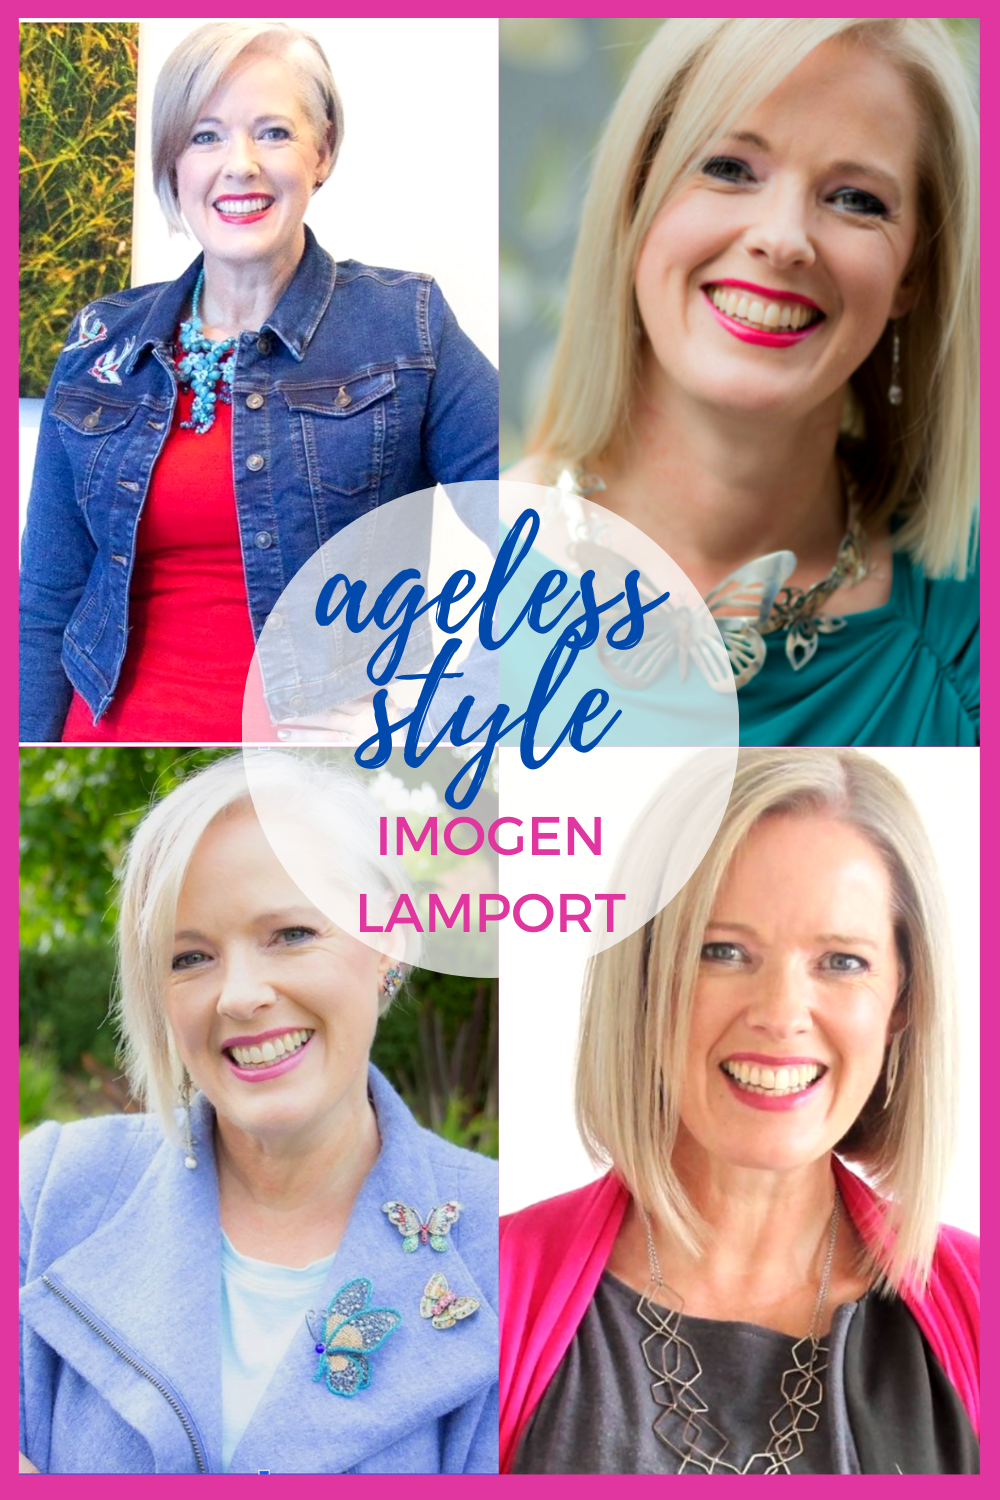 Interview with Imogen Lamport in Ageless Style